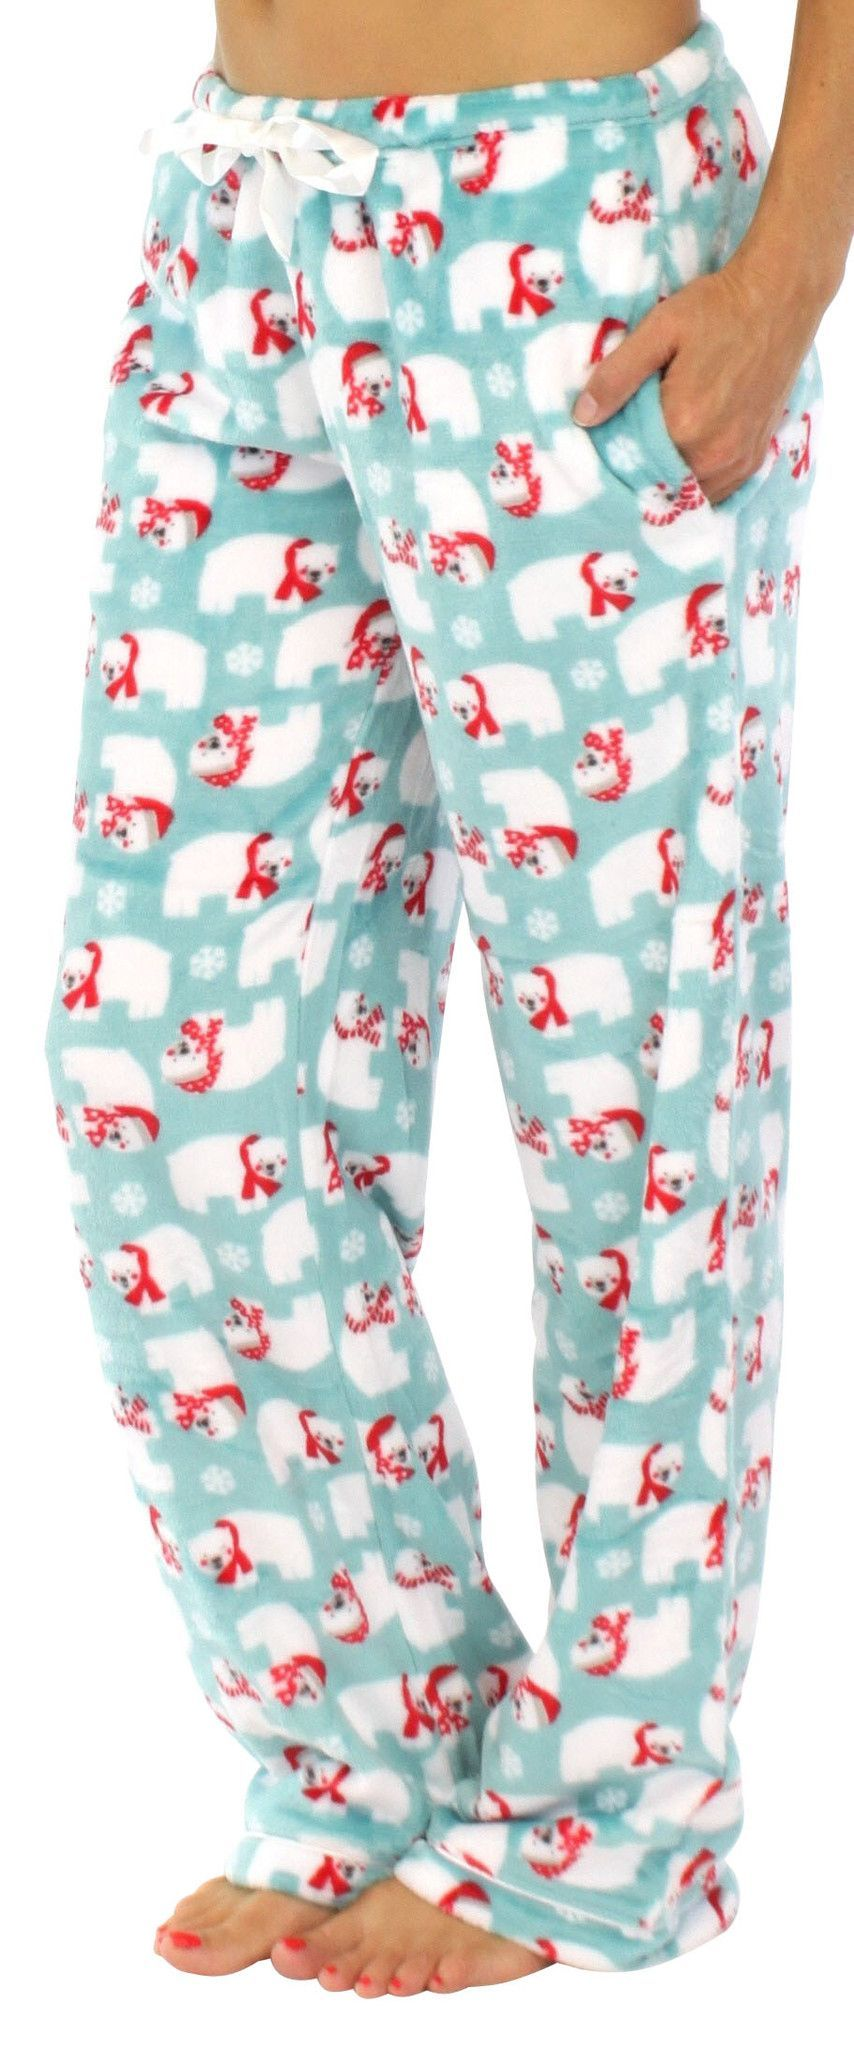 86305538f1 PajamaMania fleece pajama pants are made of plush fleece that will keep you  warm all winter